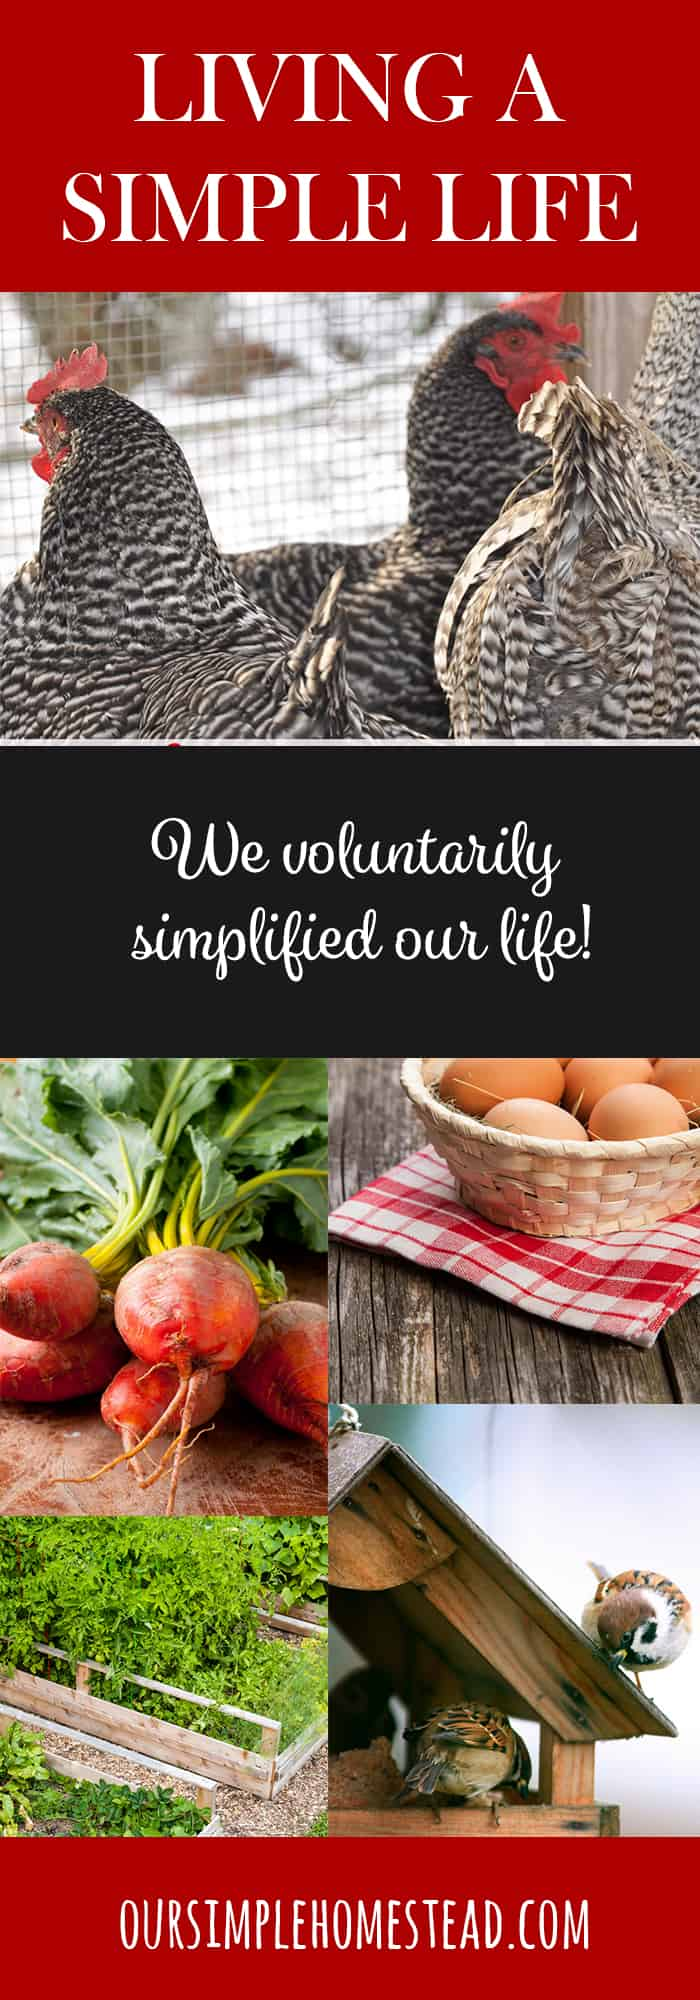 living a simple life The art of simple living, matt bell - christian finances, money management and financial help from a biblical perspective debt, planning, budgeting, investing and more.